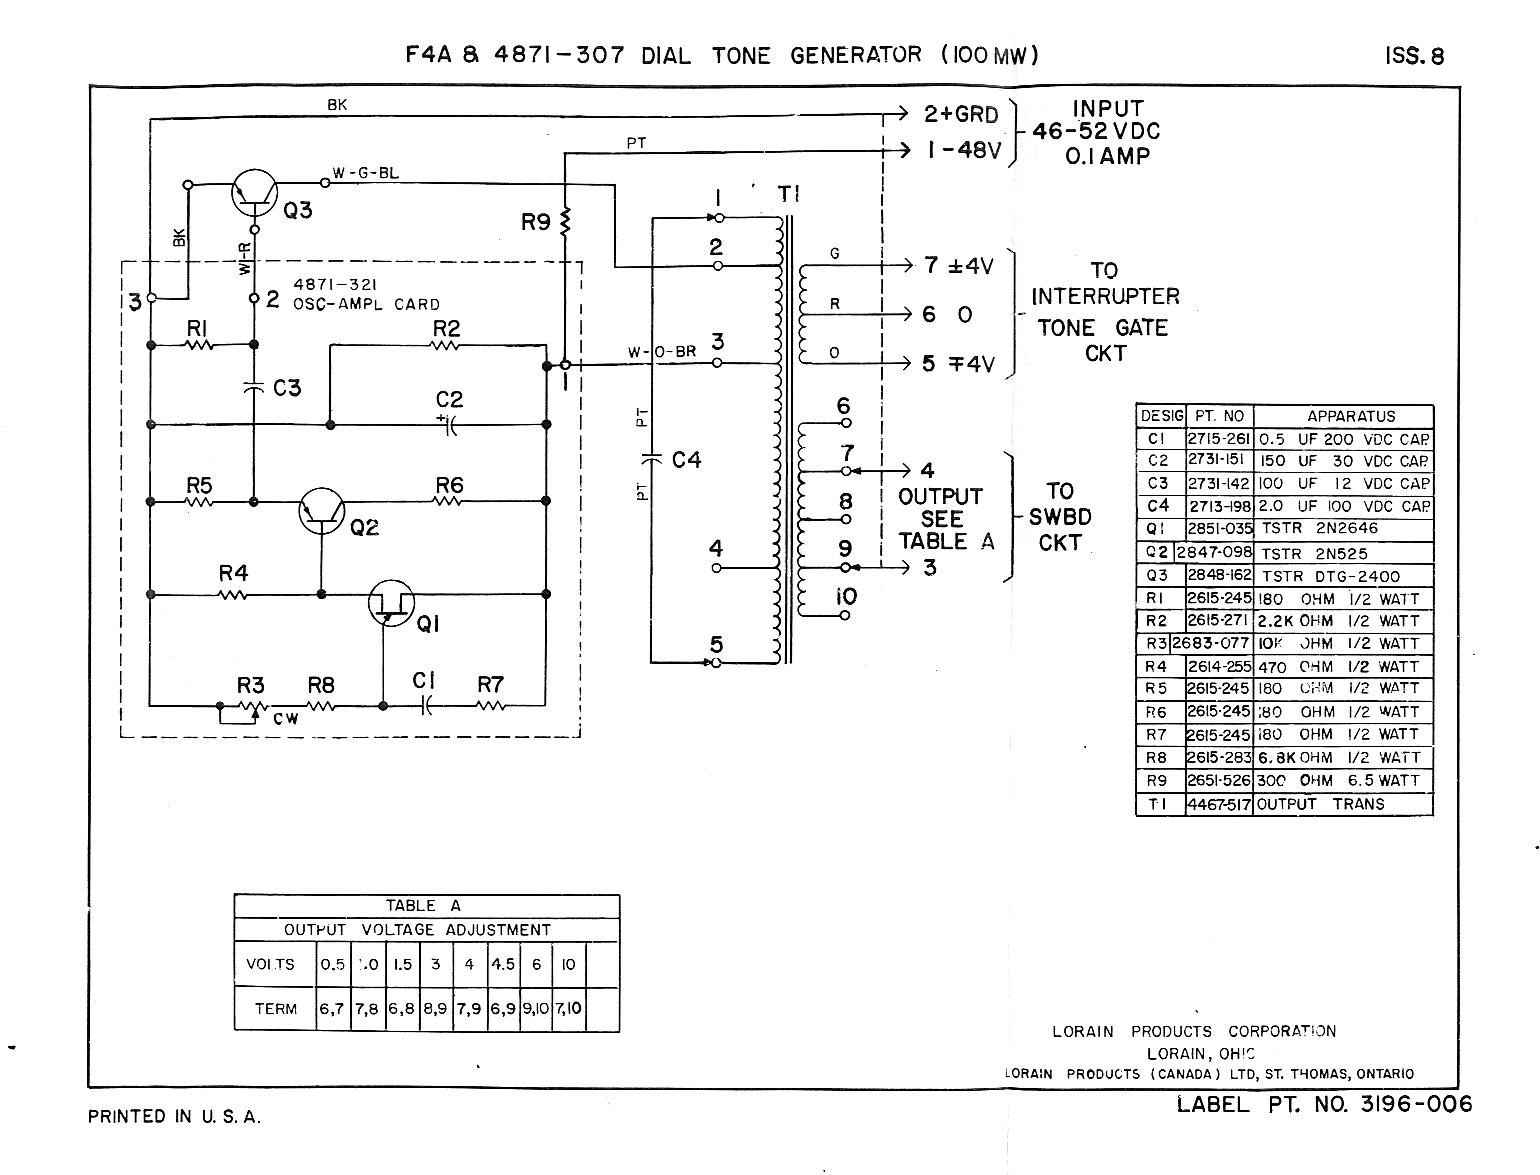 lorain_f4a telephone technical references Residential Telephone Wiring Diagram at mr168.co